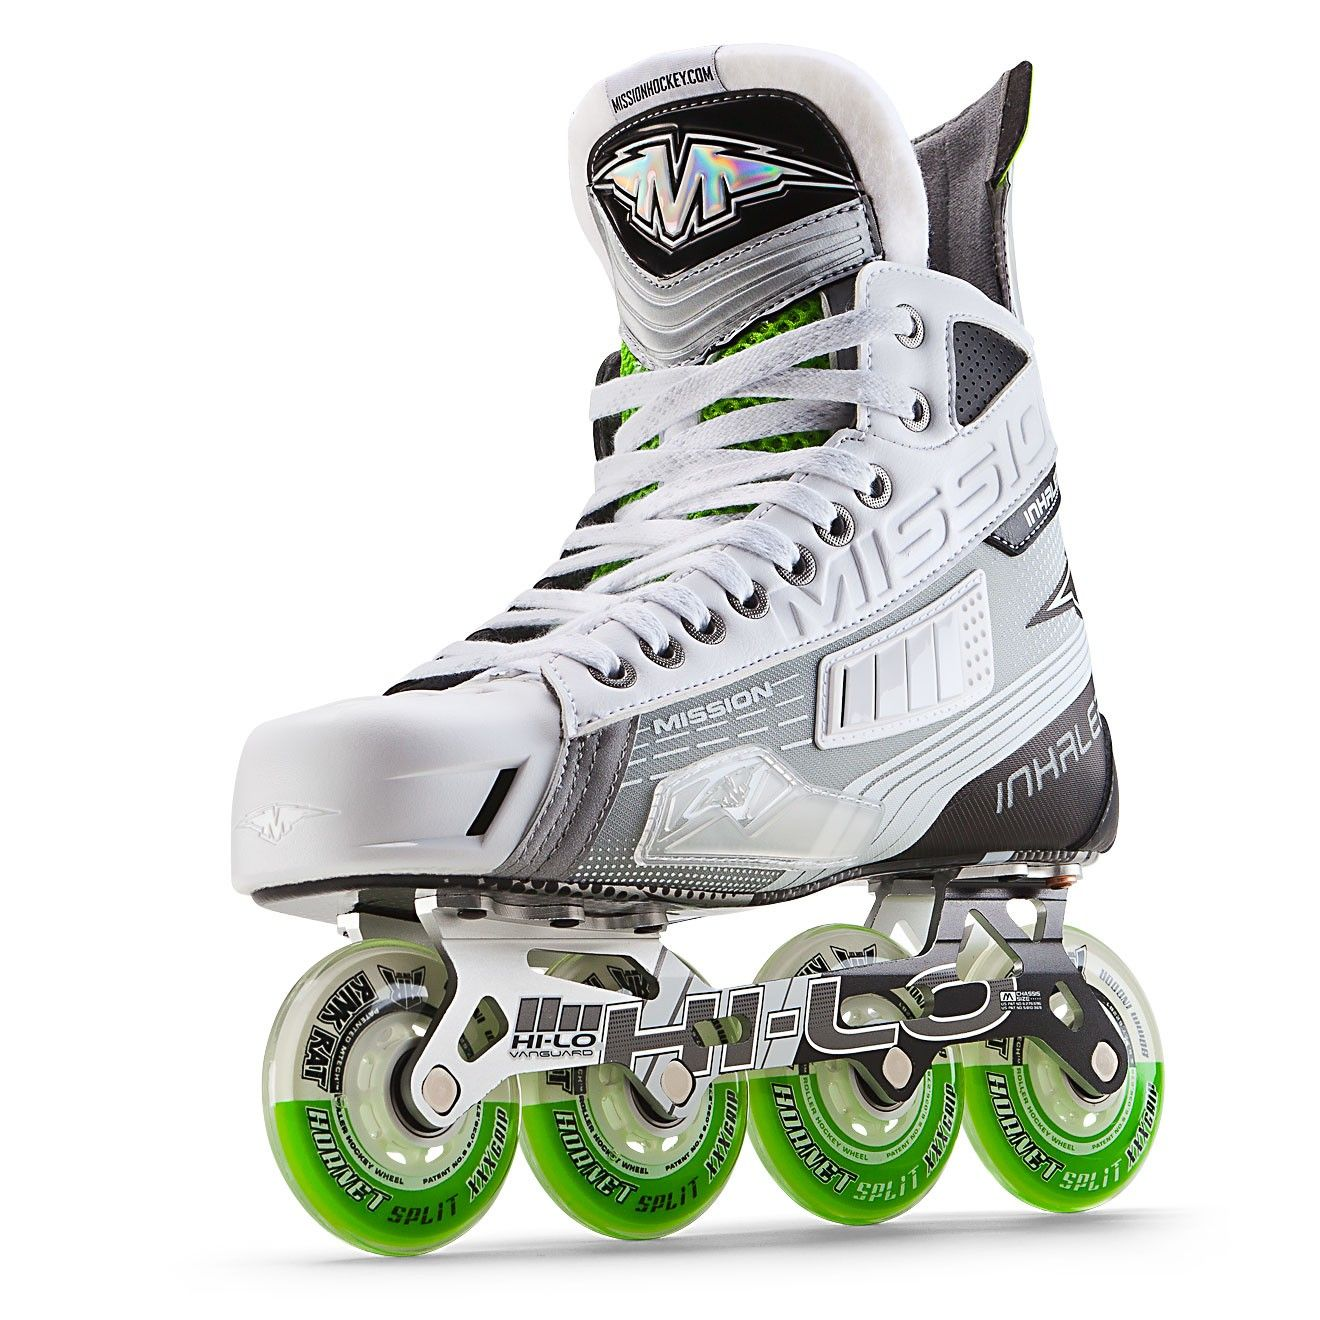 Mission Inhaler Ac2 Roller Hockey Skate Senior Roller Hockey Skates Inline Skating Roller Skates